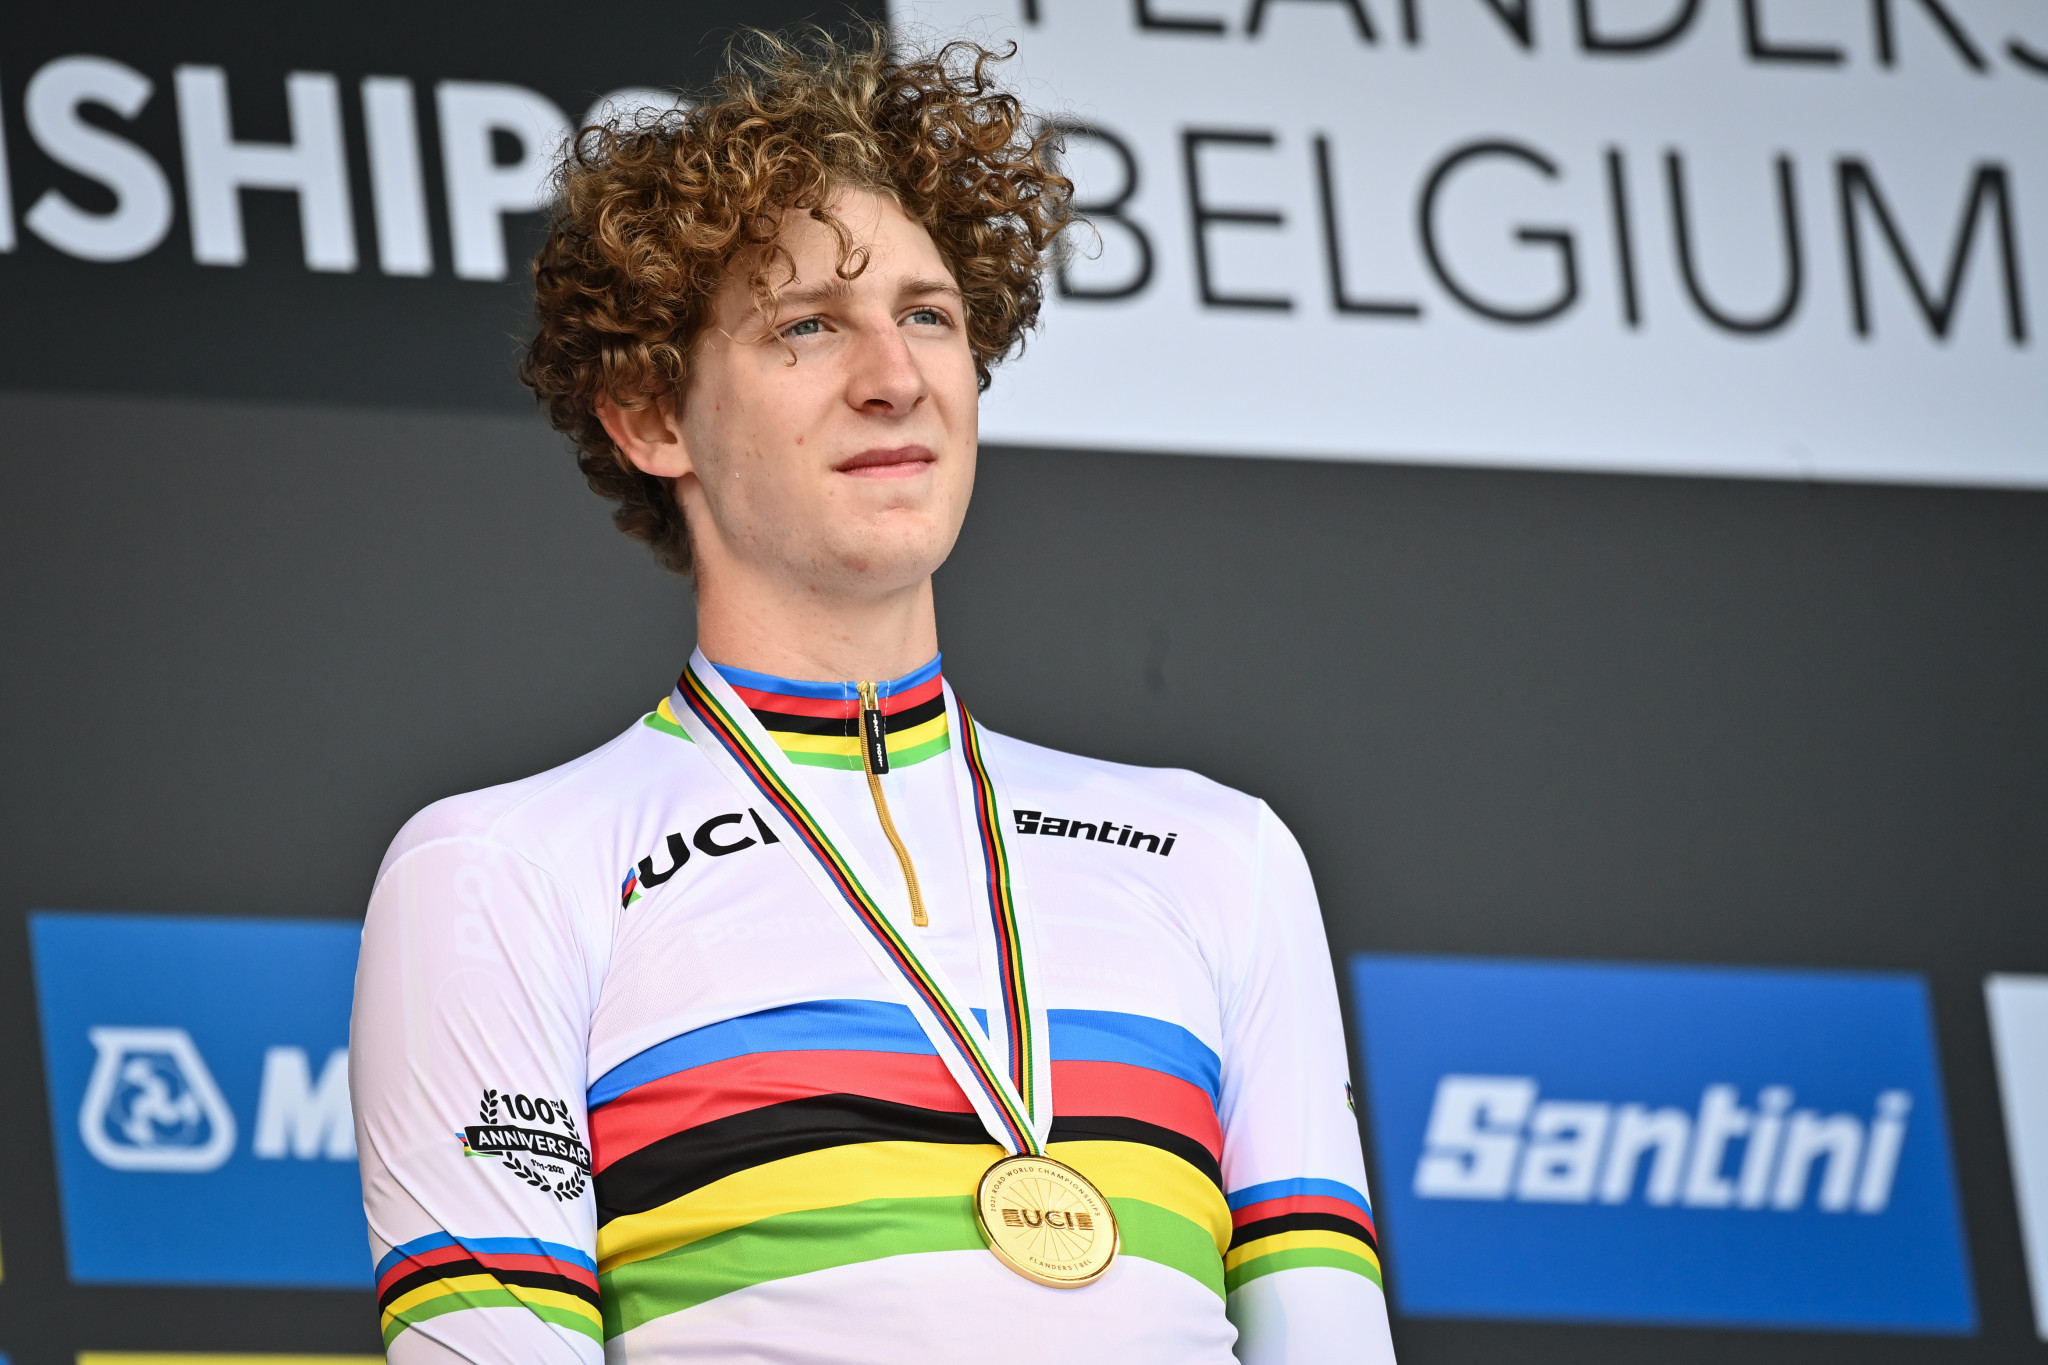 Wang wins junior men's time trial title at UCI Road World Championships